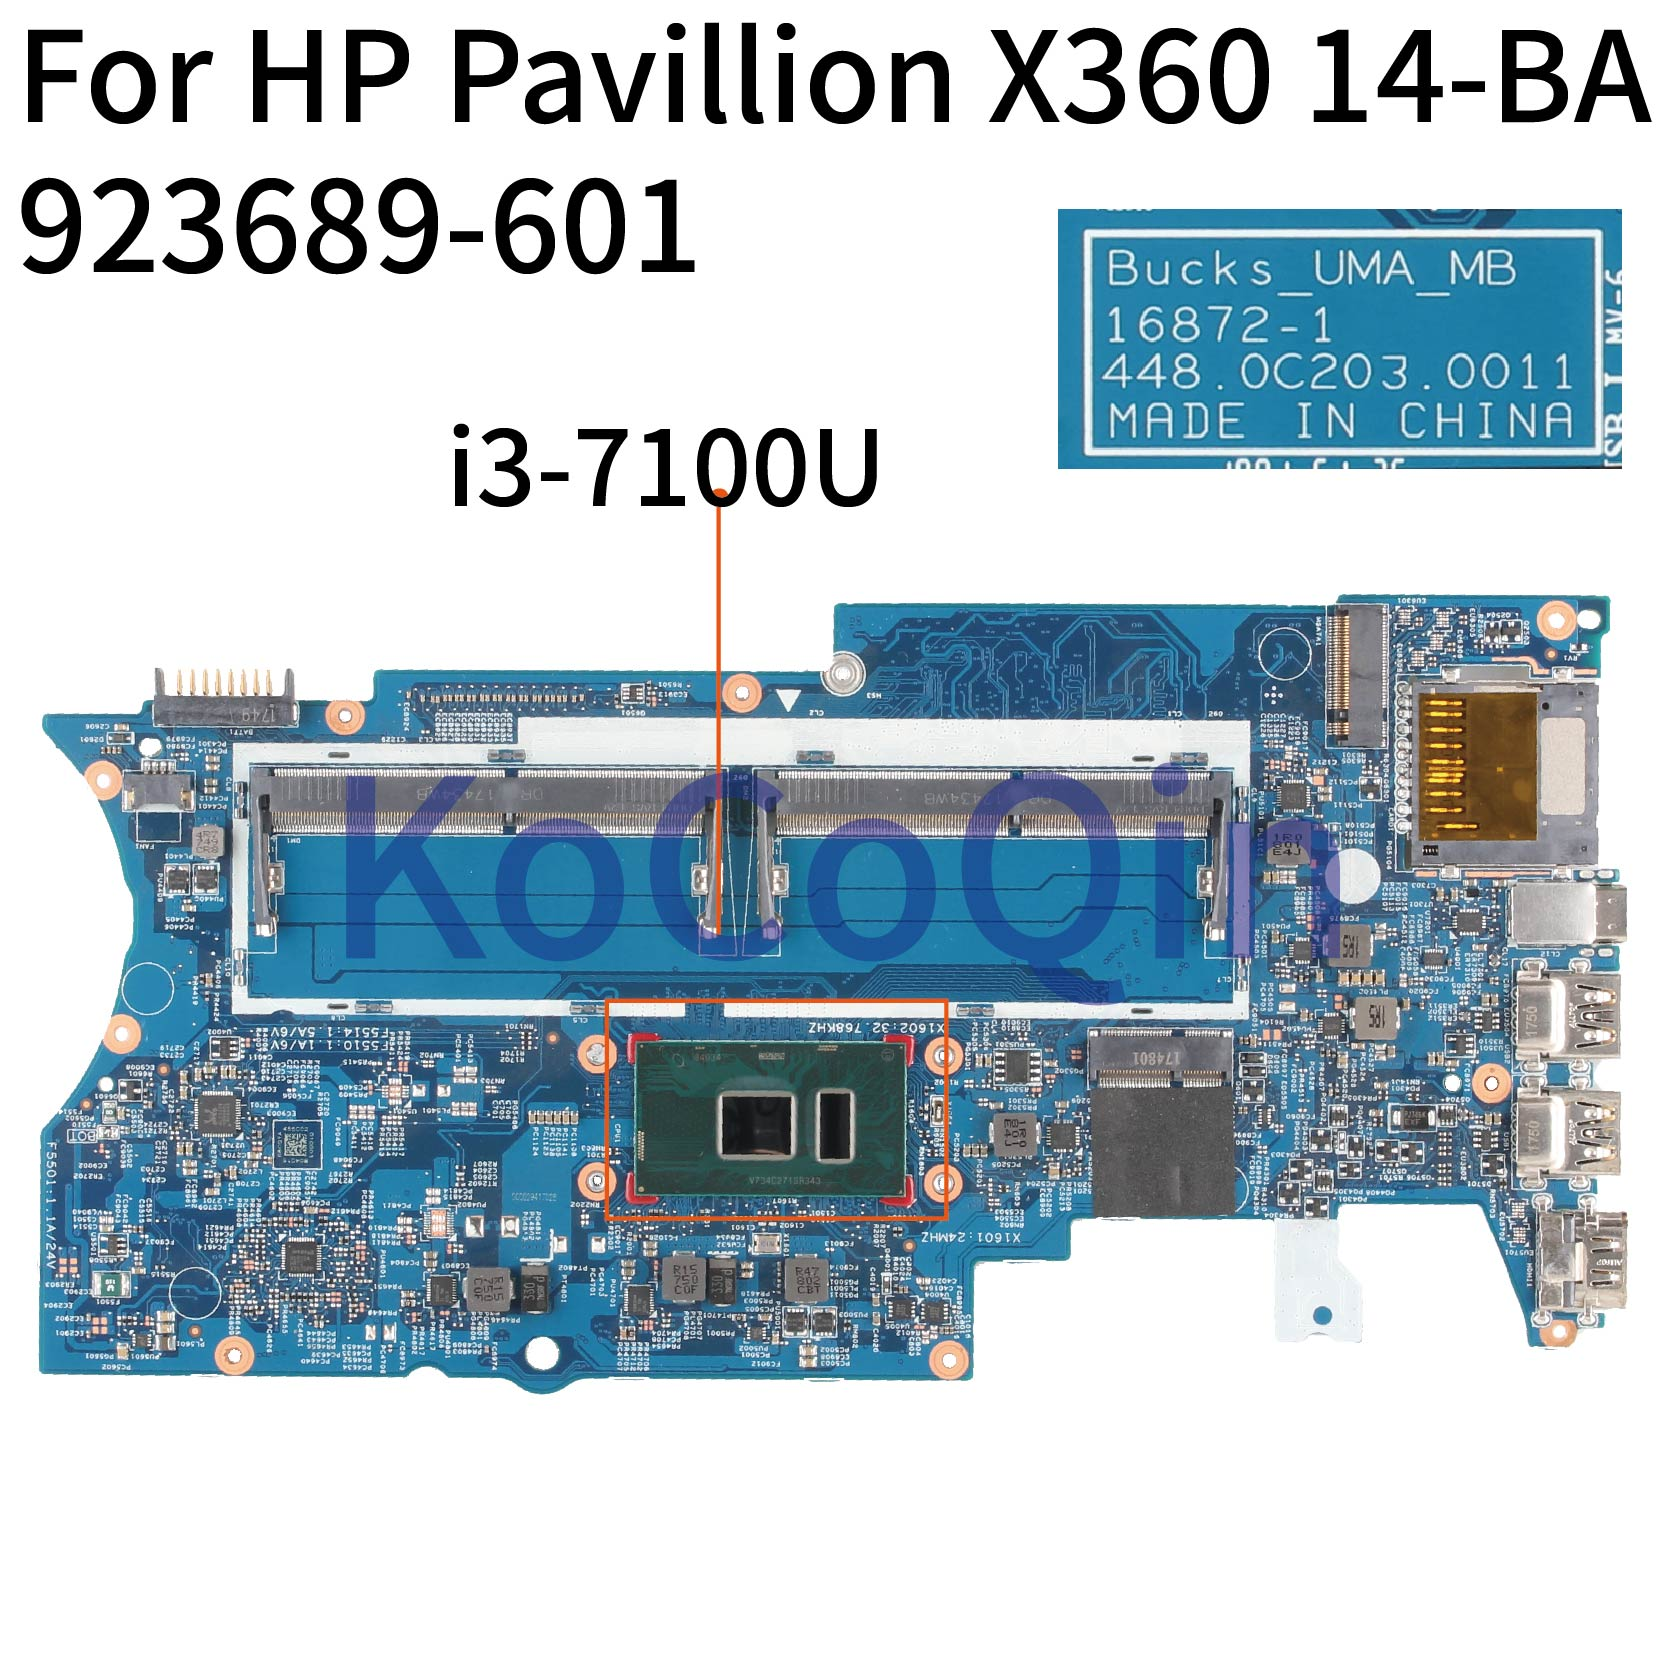 KoCoQin Laptop motherboard For HP Pavillion X360 14 BA Core SR343 i3 7100U Mainboard 923689 601 16872 1 Laptop Motherboard     - title=